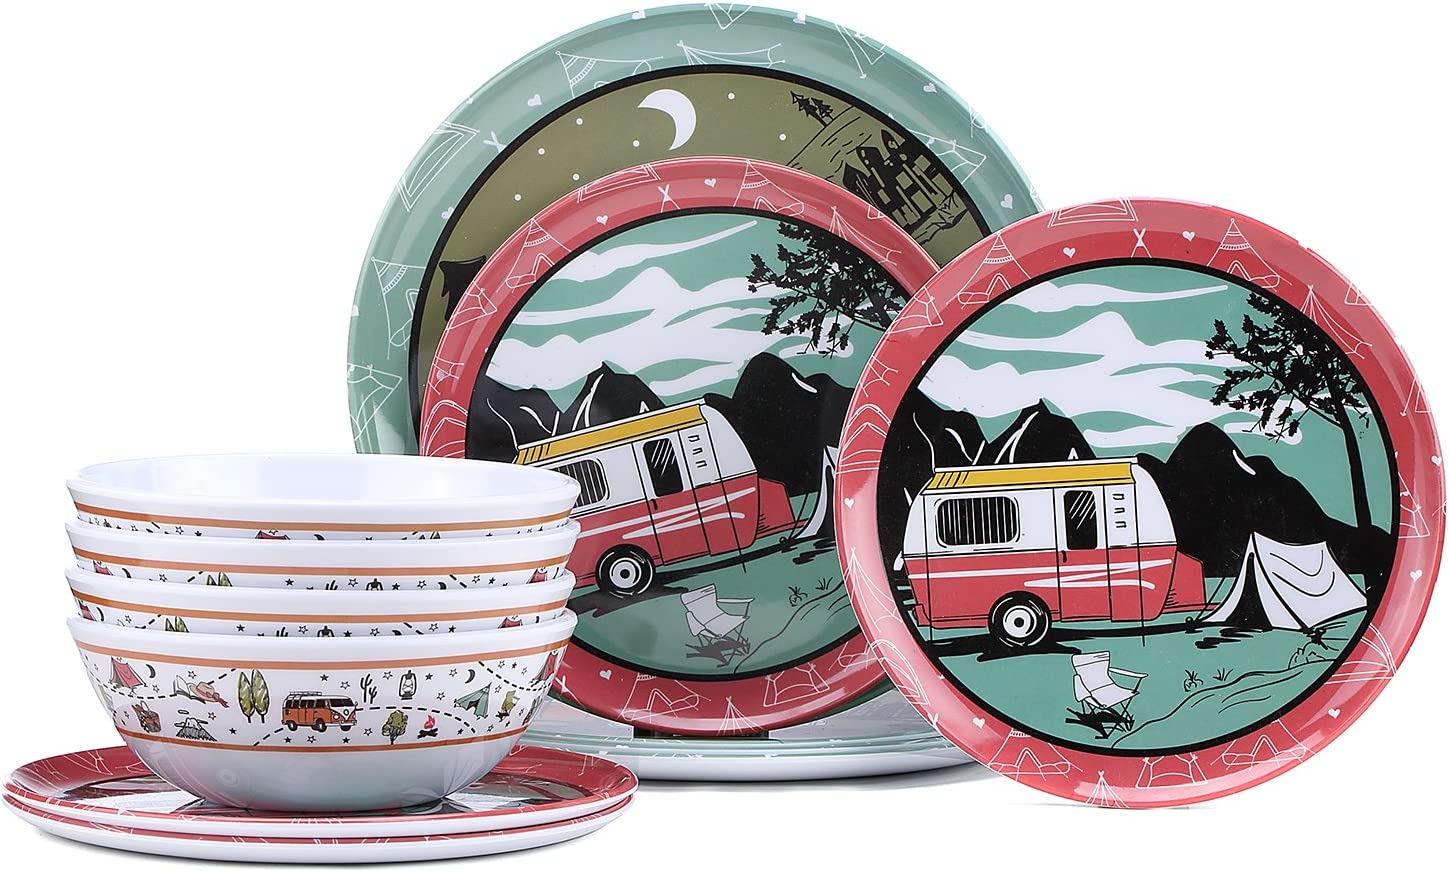 camping crockery for 4 people cups bowls dishwasher safe picnic camping. 16 pieces including plates H-Collection Melamine tableware set